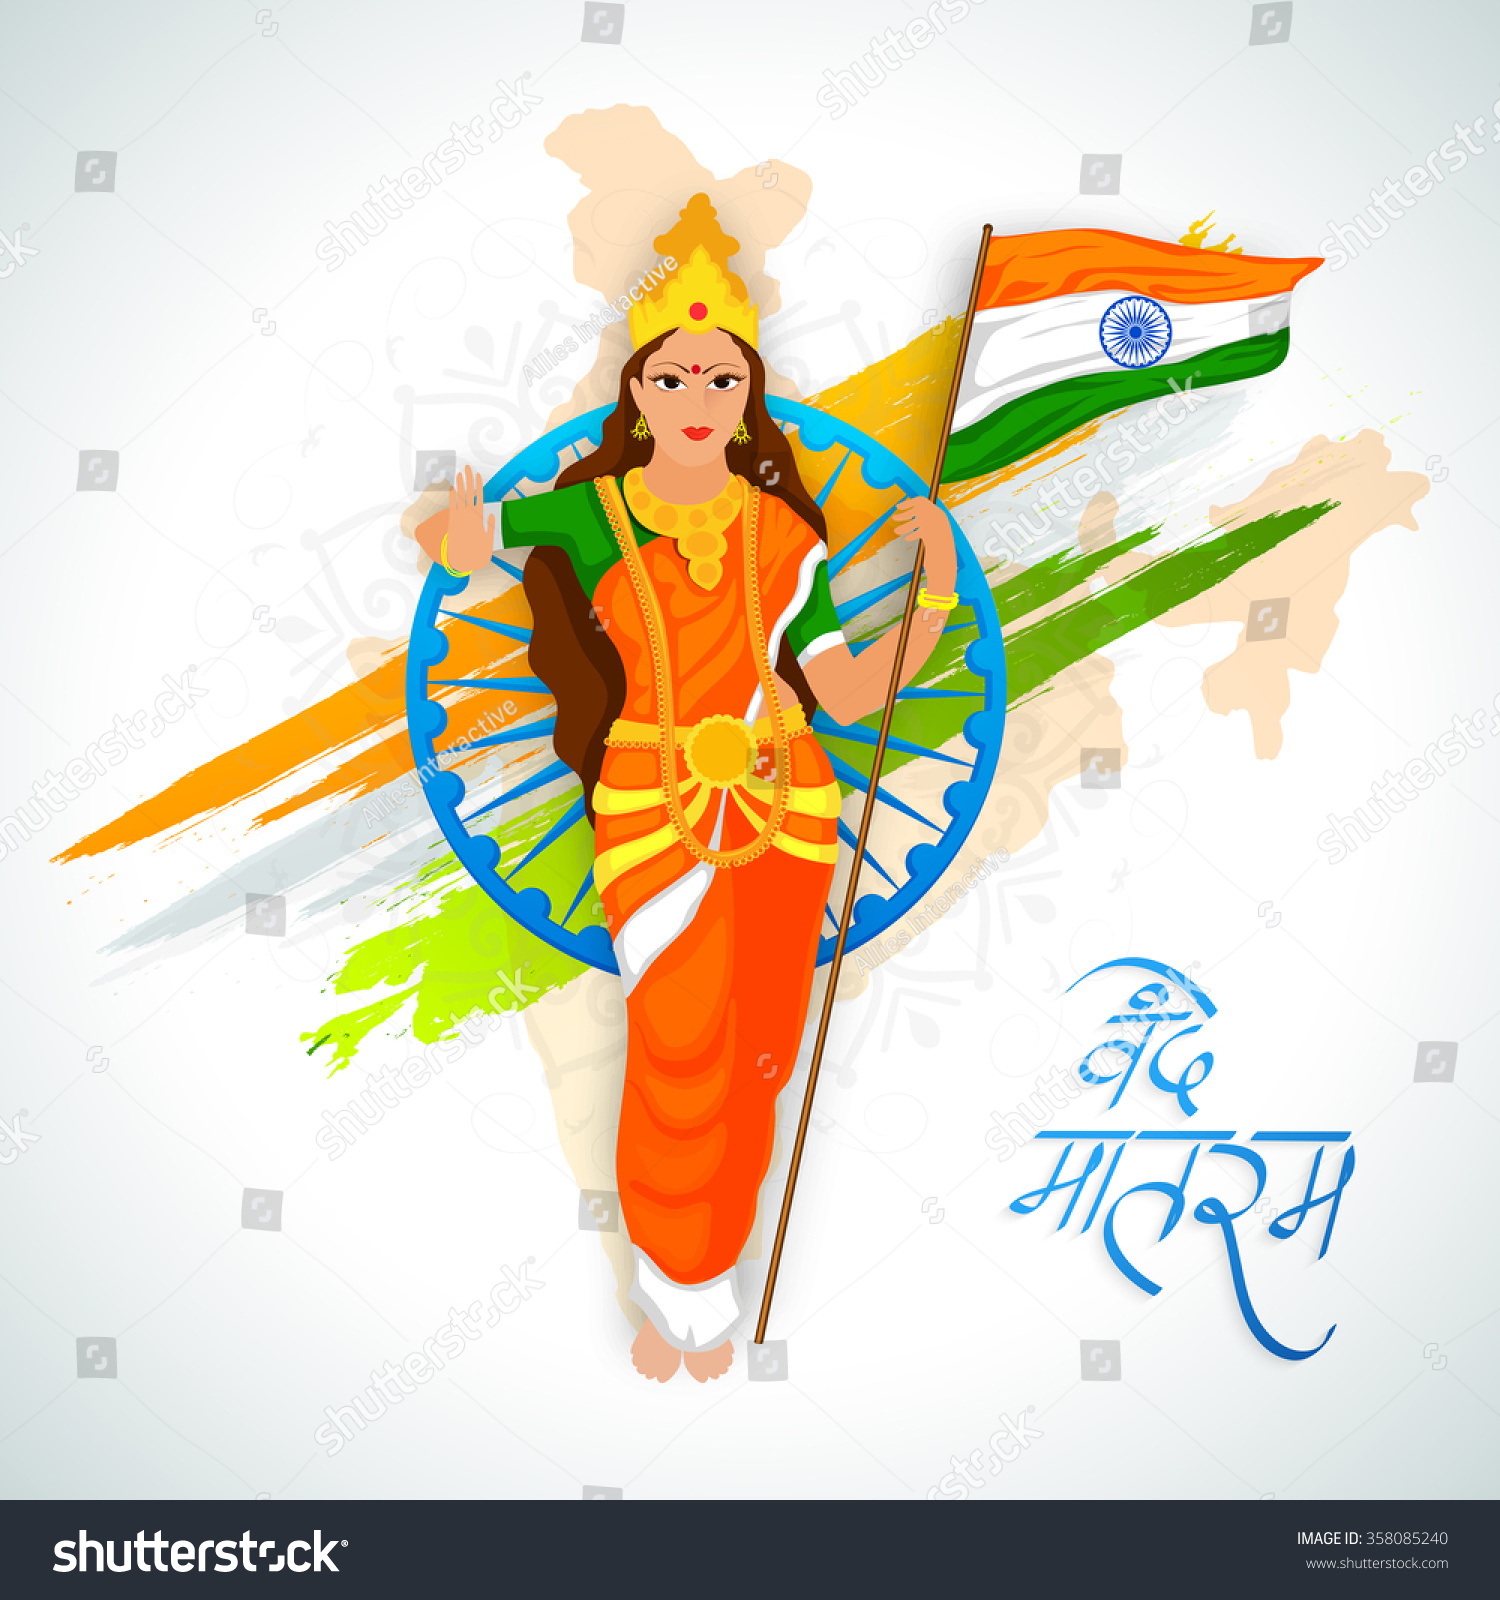 bharat mata with rss flag - photo #25